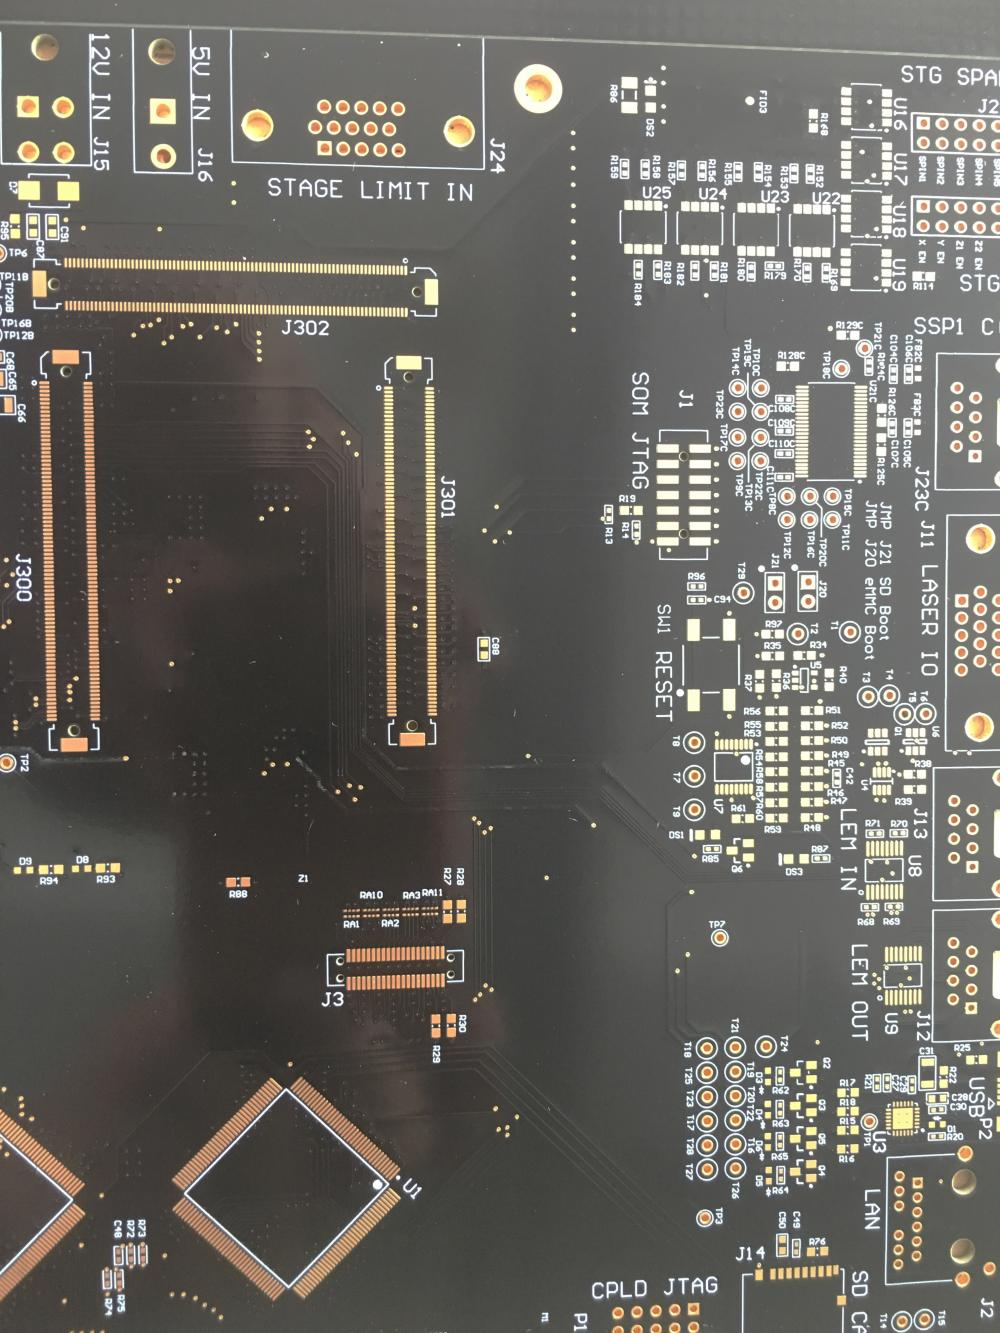 8 layer TG170 1.6mm ENIG PCB